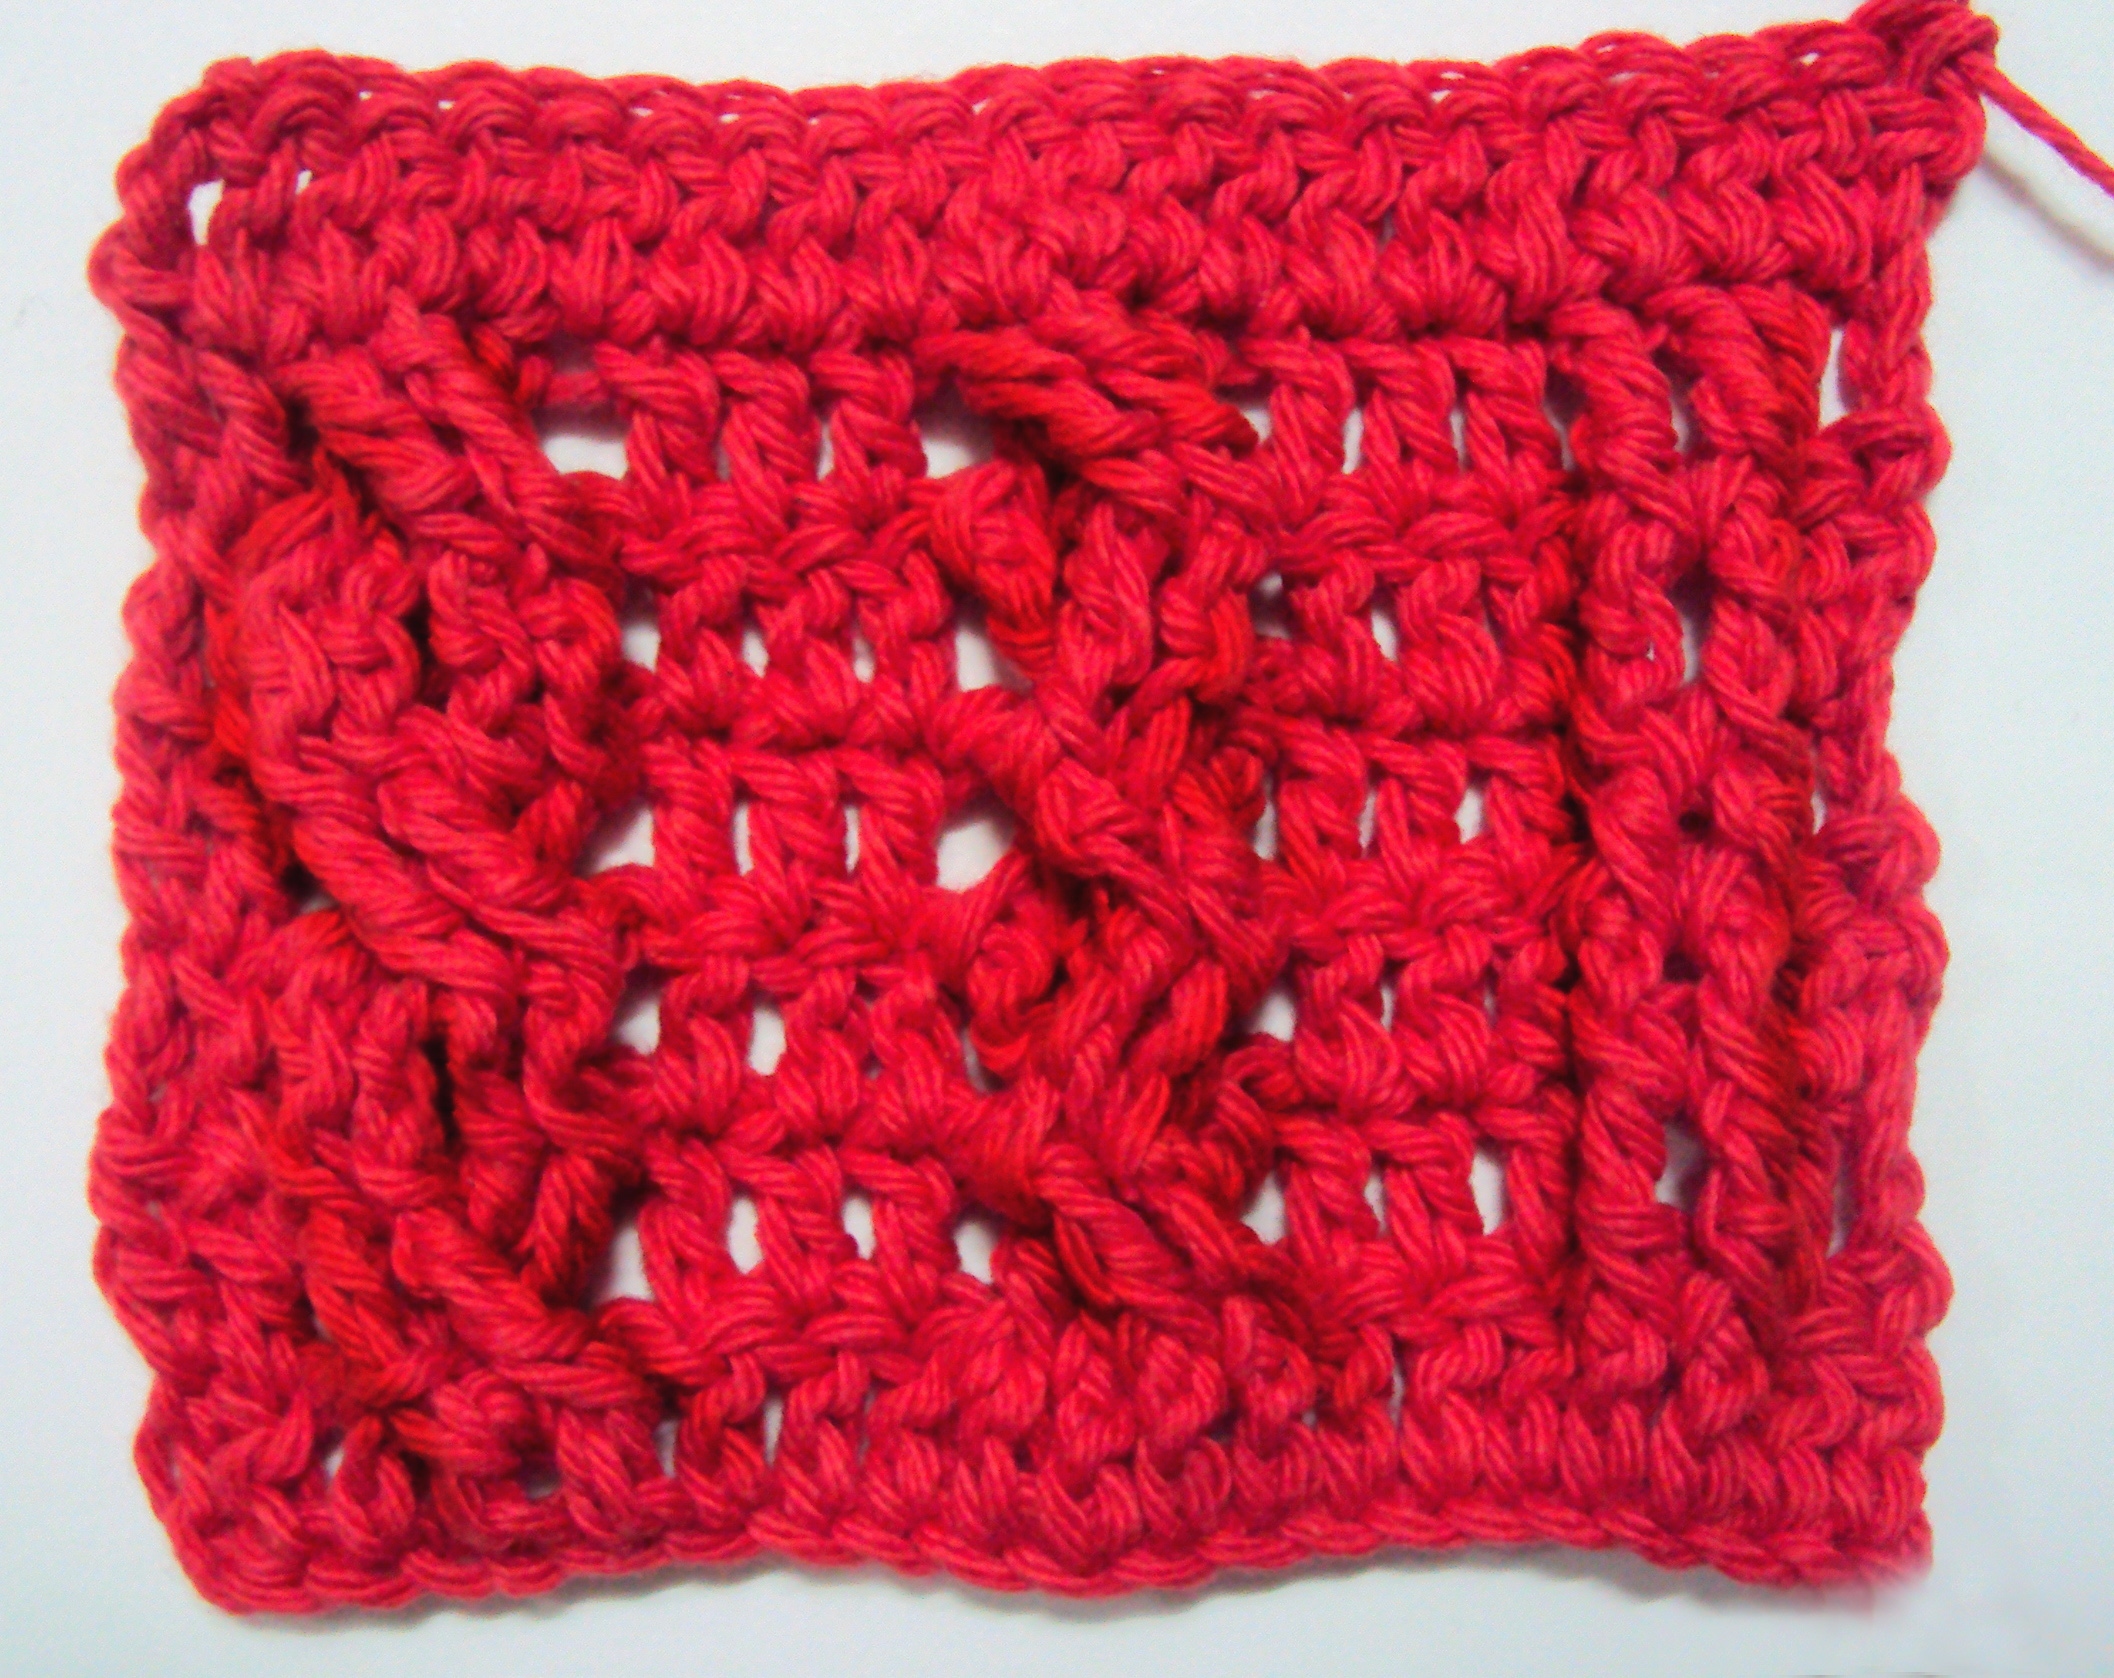 Crochet Cable Stitch : Crochet Stitches How to crochet: cable stitches